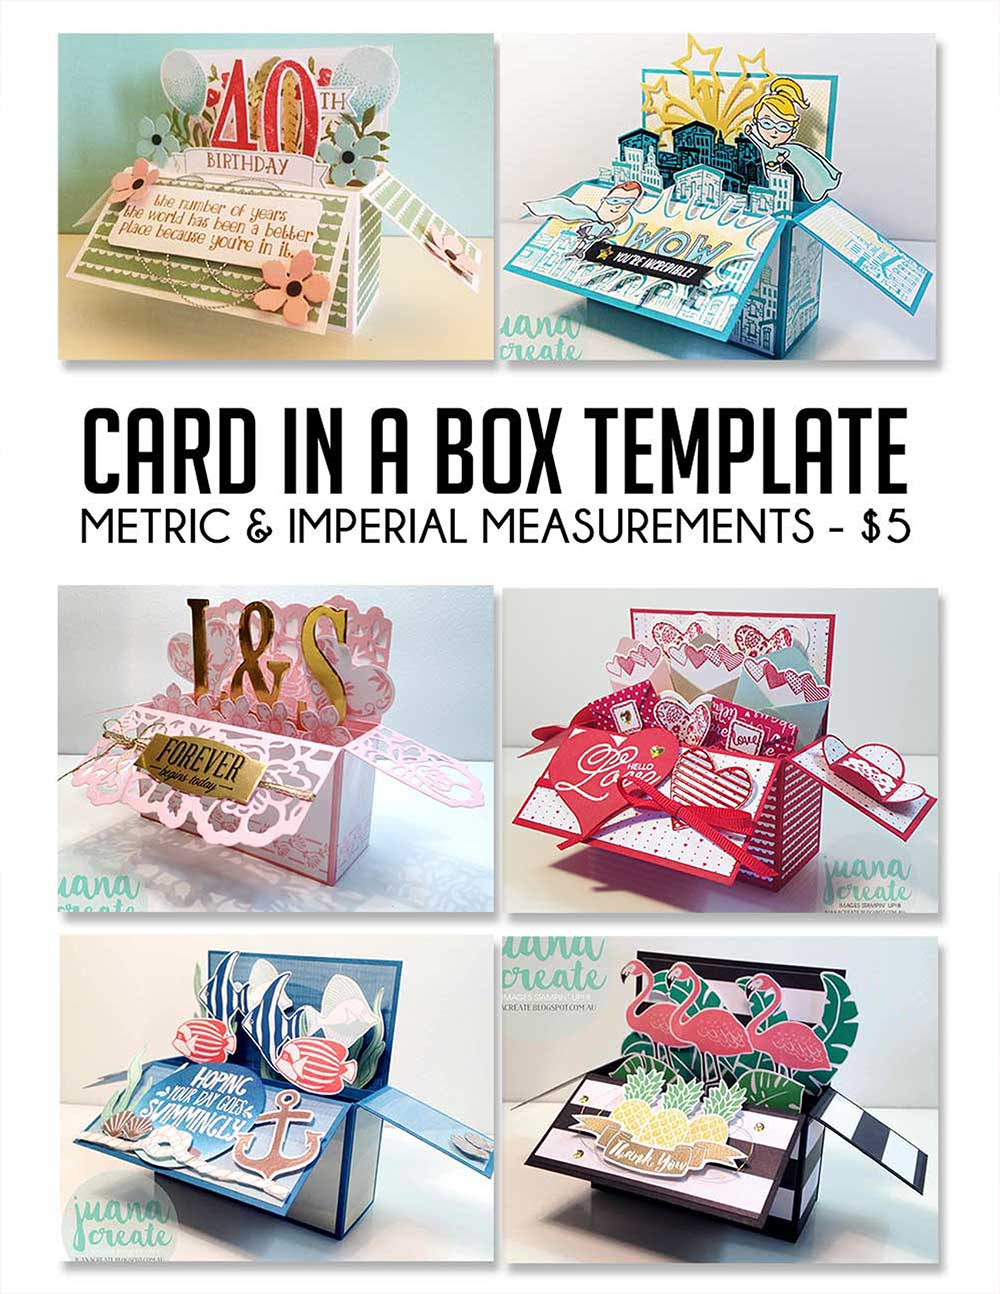 Card in a Box Template - $5